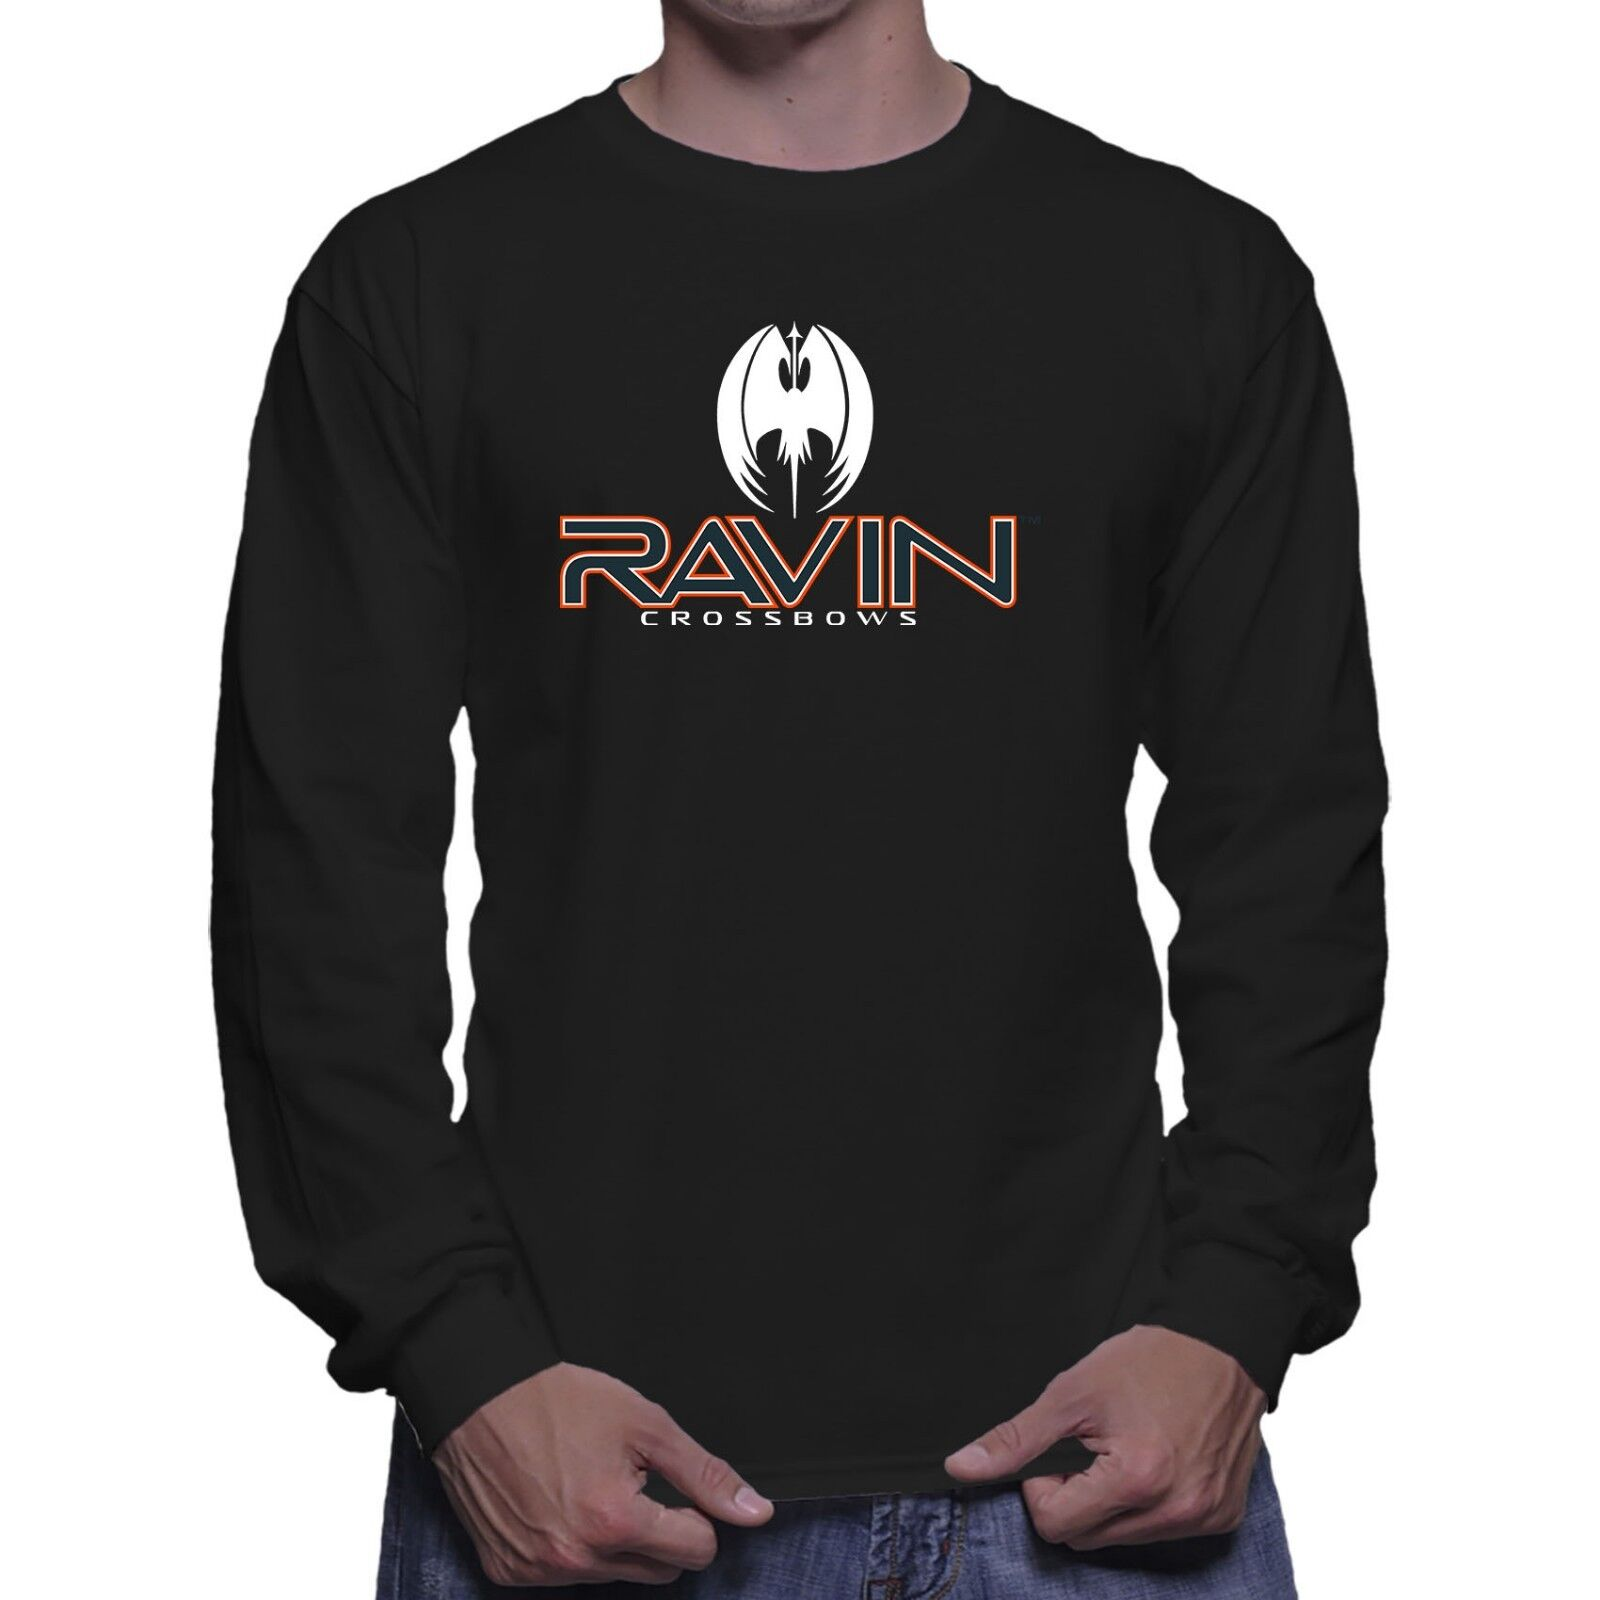 Ravin Crossbow Hunting Long Sleeve Black T-shirt Size S To 5